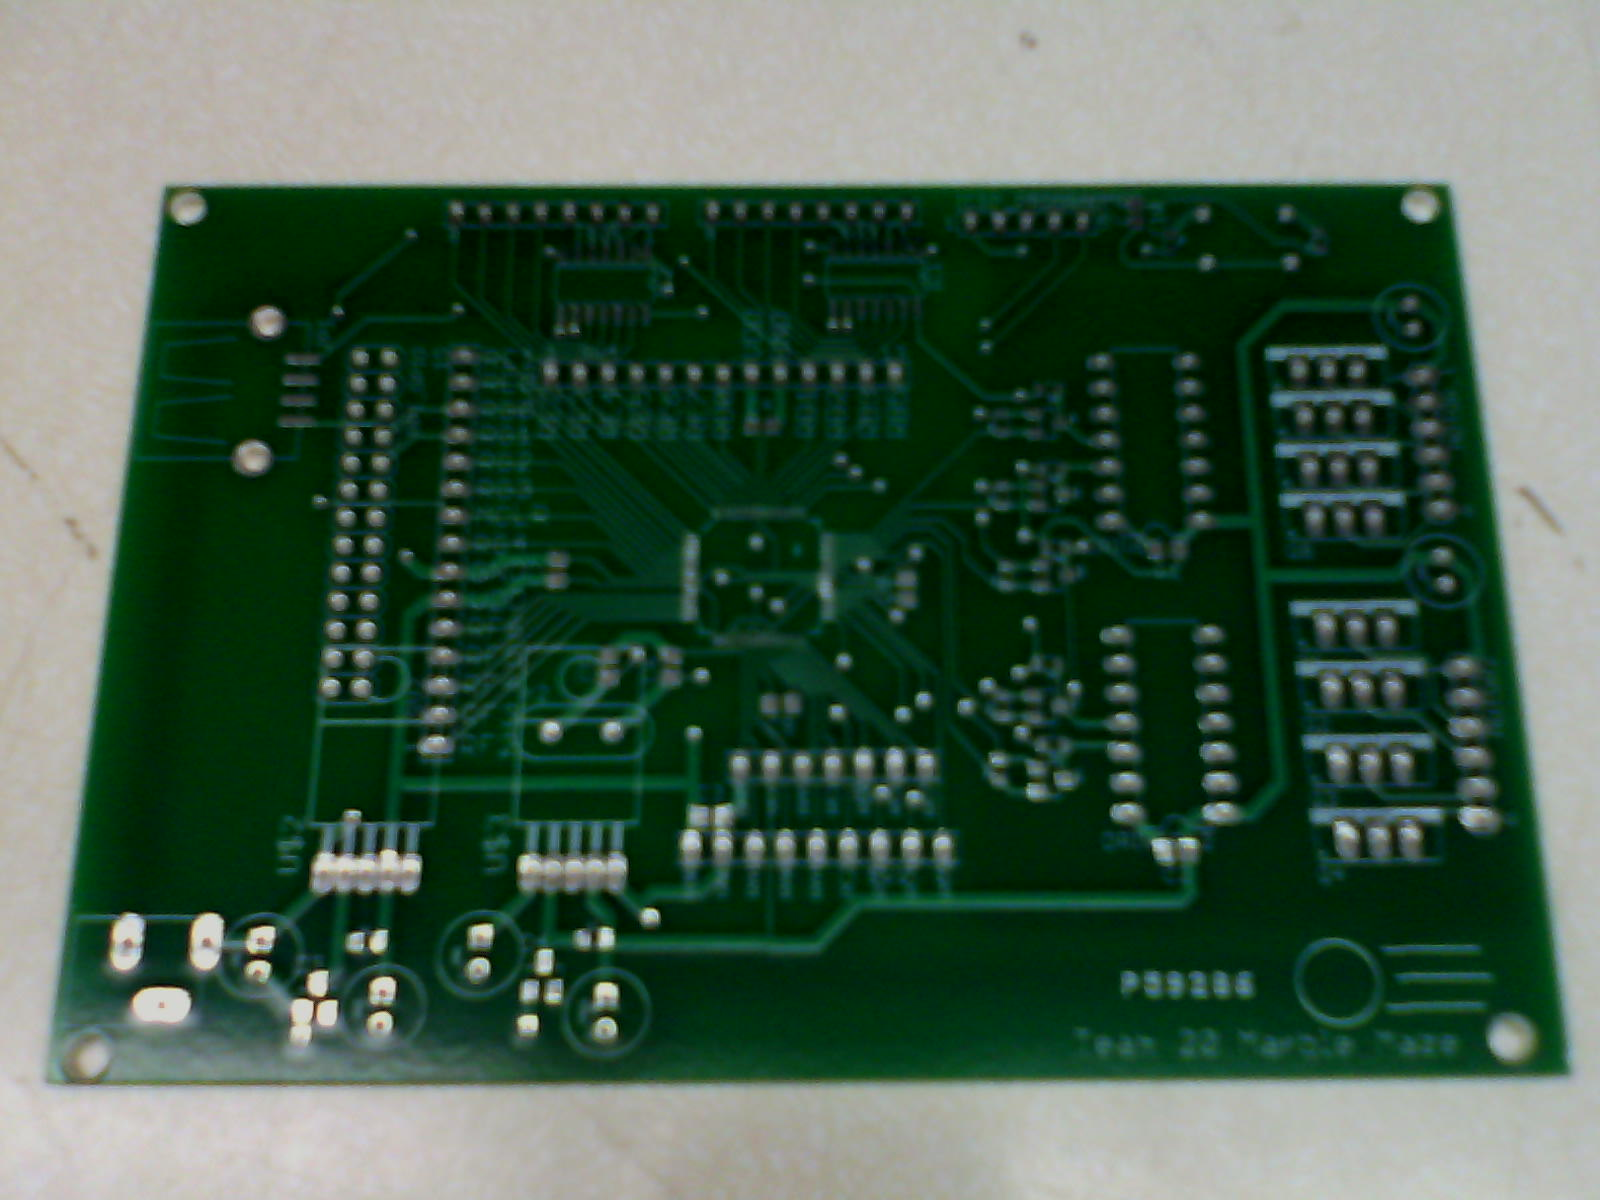 Justin Spencers Lab Notebook Electronic Circuits Software Pic Pcb Electrical Cad Electronics Visually Inspected No Issues All Traces Appear Sound Checked Continuity Of Vias The Footprint Components